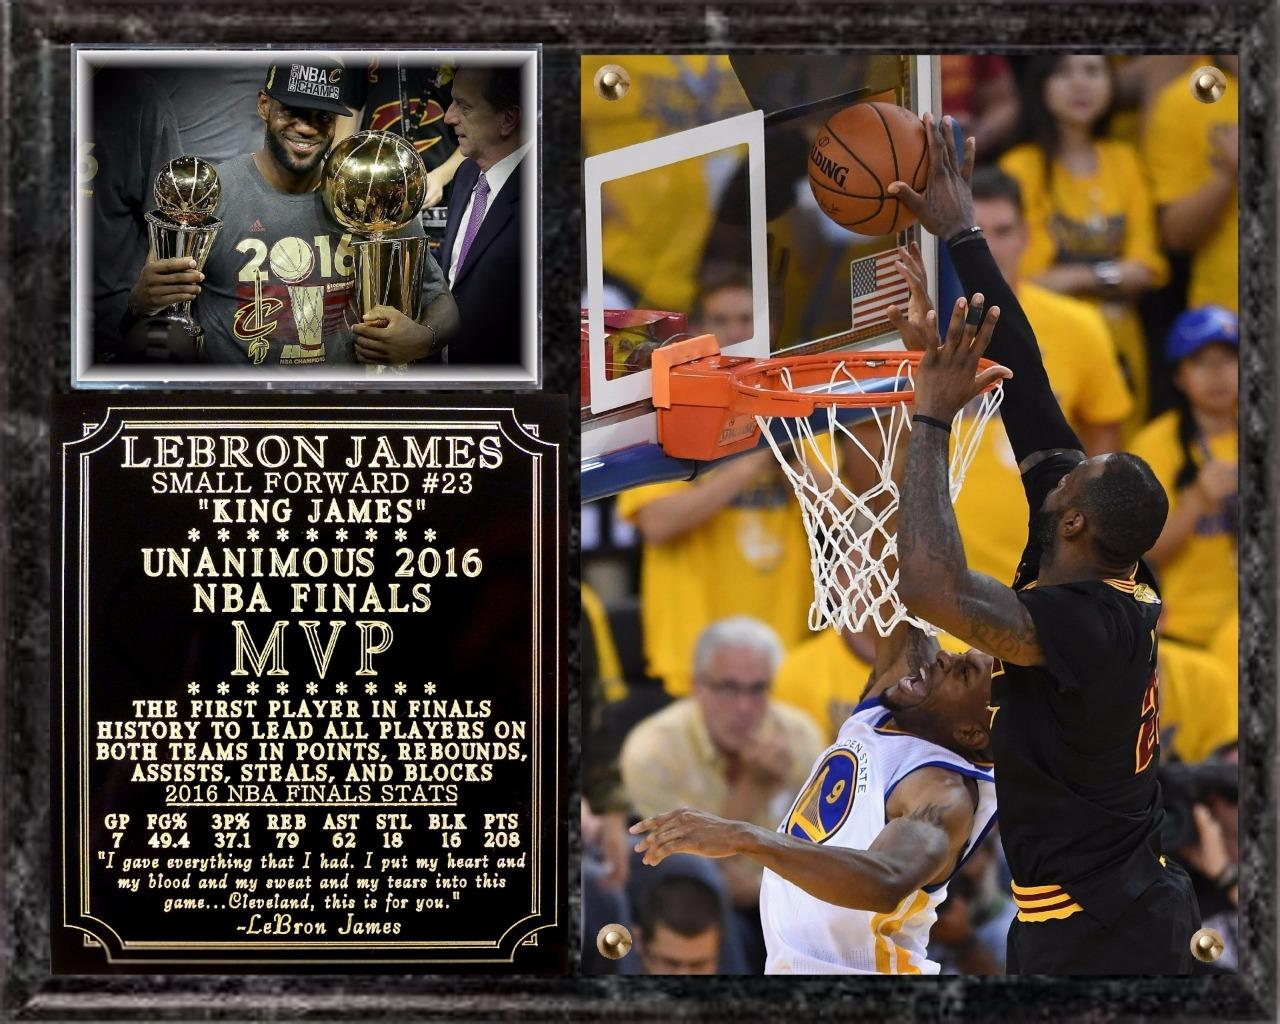 Nba Finals Champions List | Basketball Scores